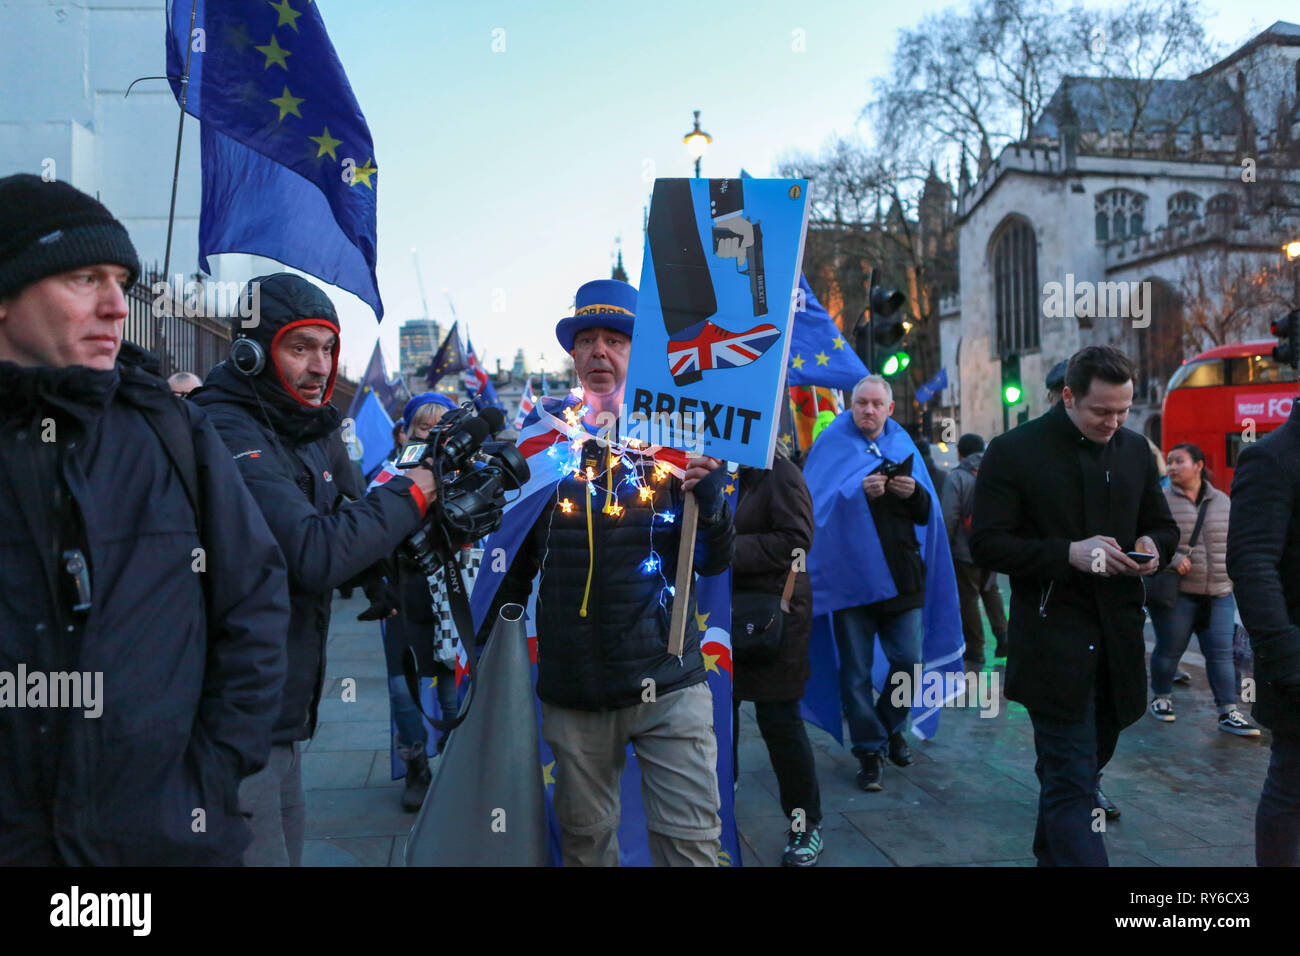 London, UK. 12th Mar, 2019. Pro Brexit and Pro Remain groups around Parliament Sq and Westminster as politicians vote on the UK's withdrawal from the European Union. Penelope Barritt/Alamy Live News Stock Photo